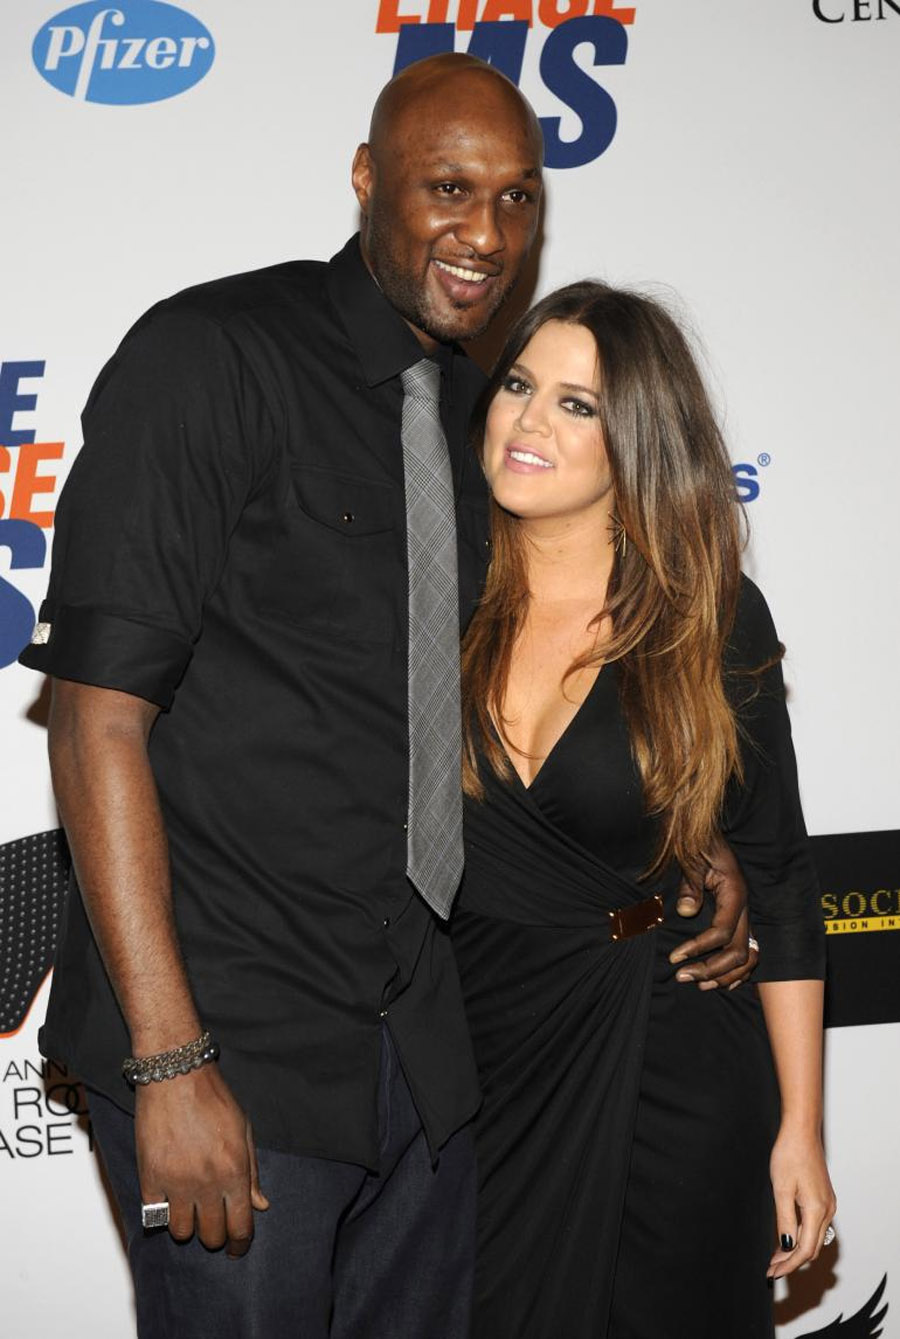 Khloe Kardashian And Lamar Odom's Marriage Trouble Caused By Drugs 46258